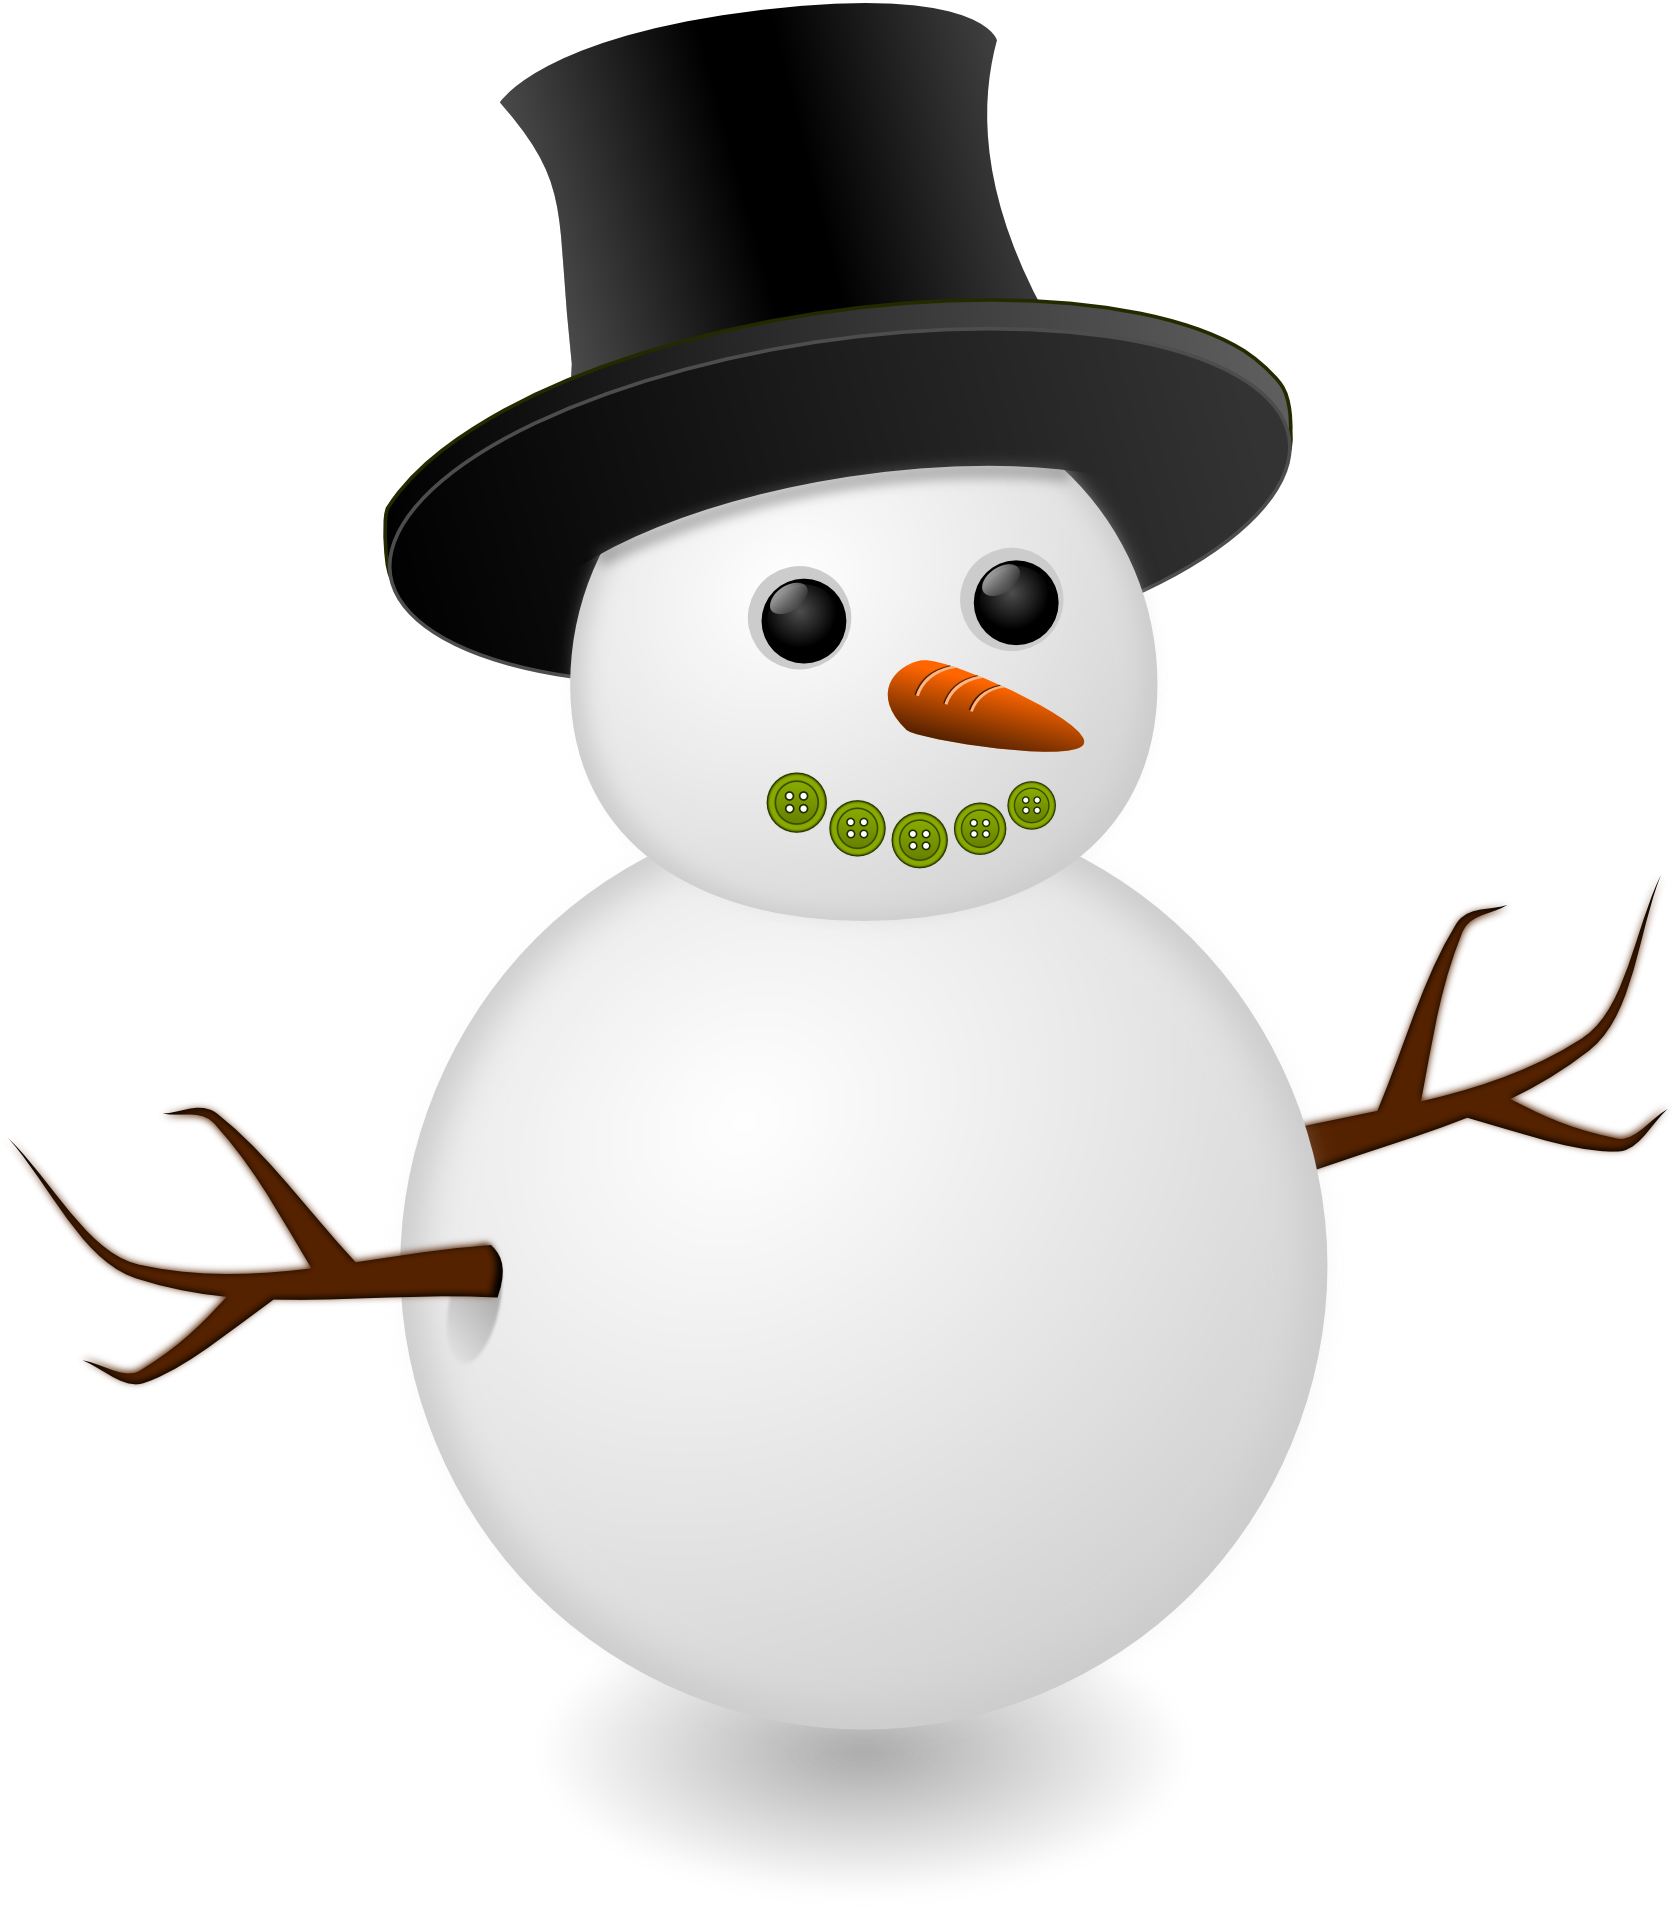 File:Snowman illustration.png - Snowman PNG